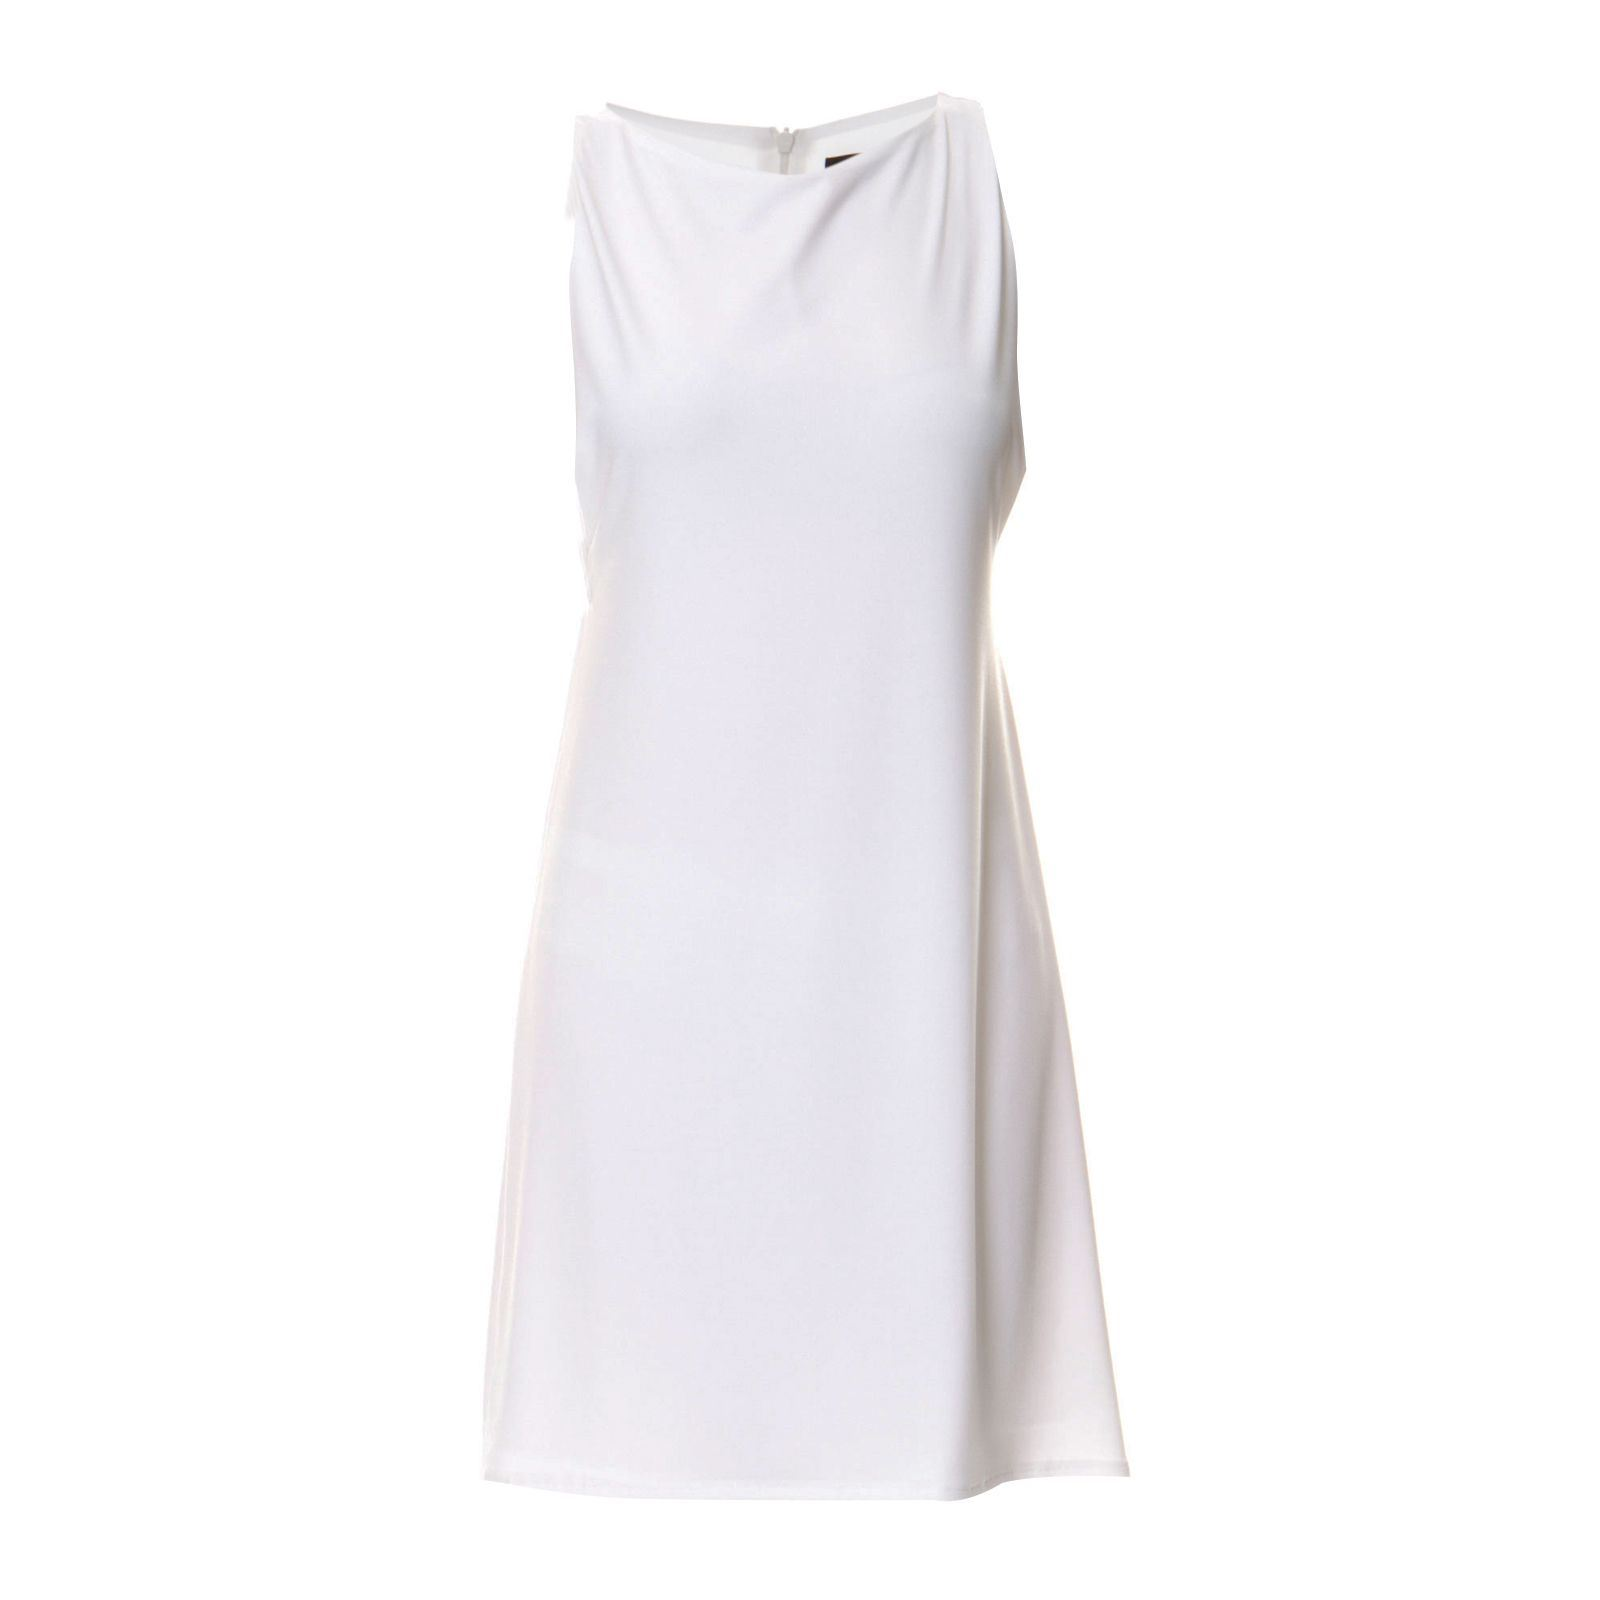 Marciano Guess :  Robe fluide blanche